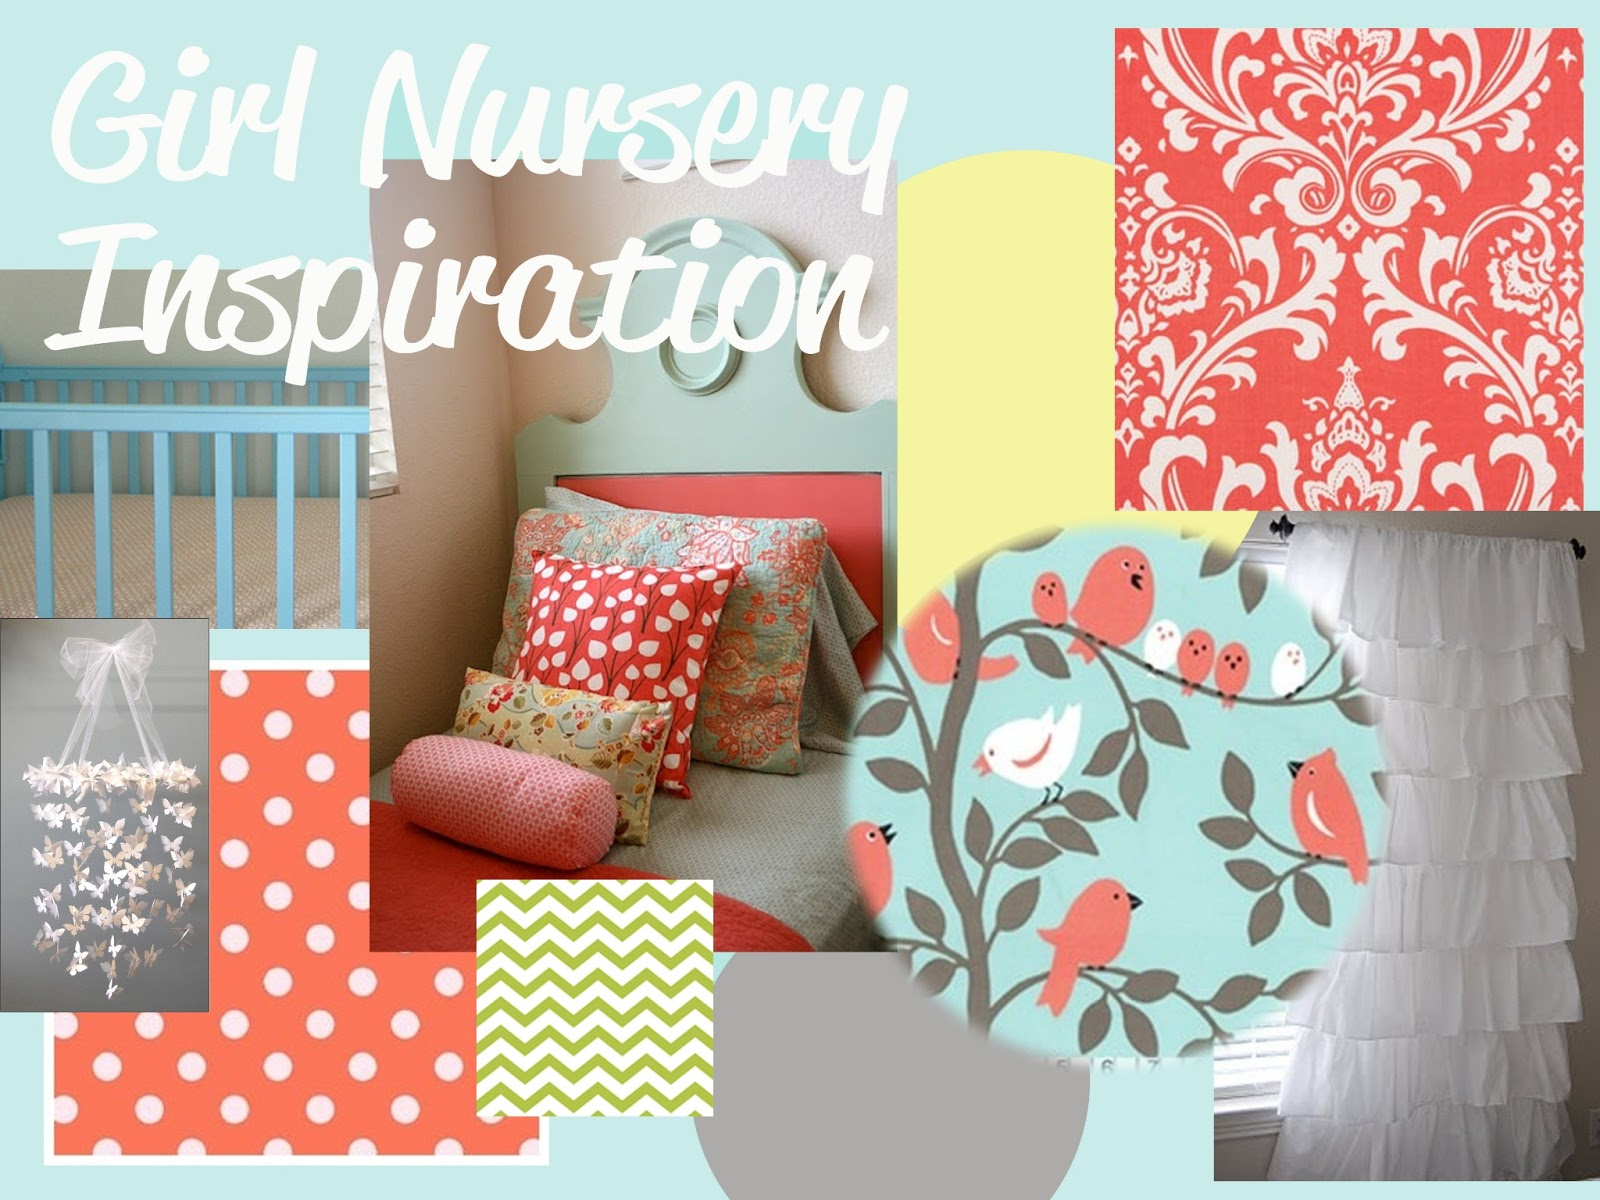 Diy Crafts For Baby Room: A Baby On The Way And Nursery Inspiration Boards